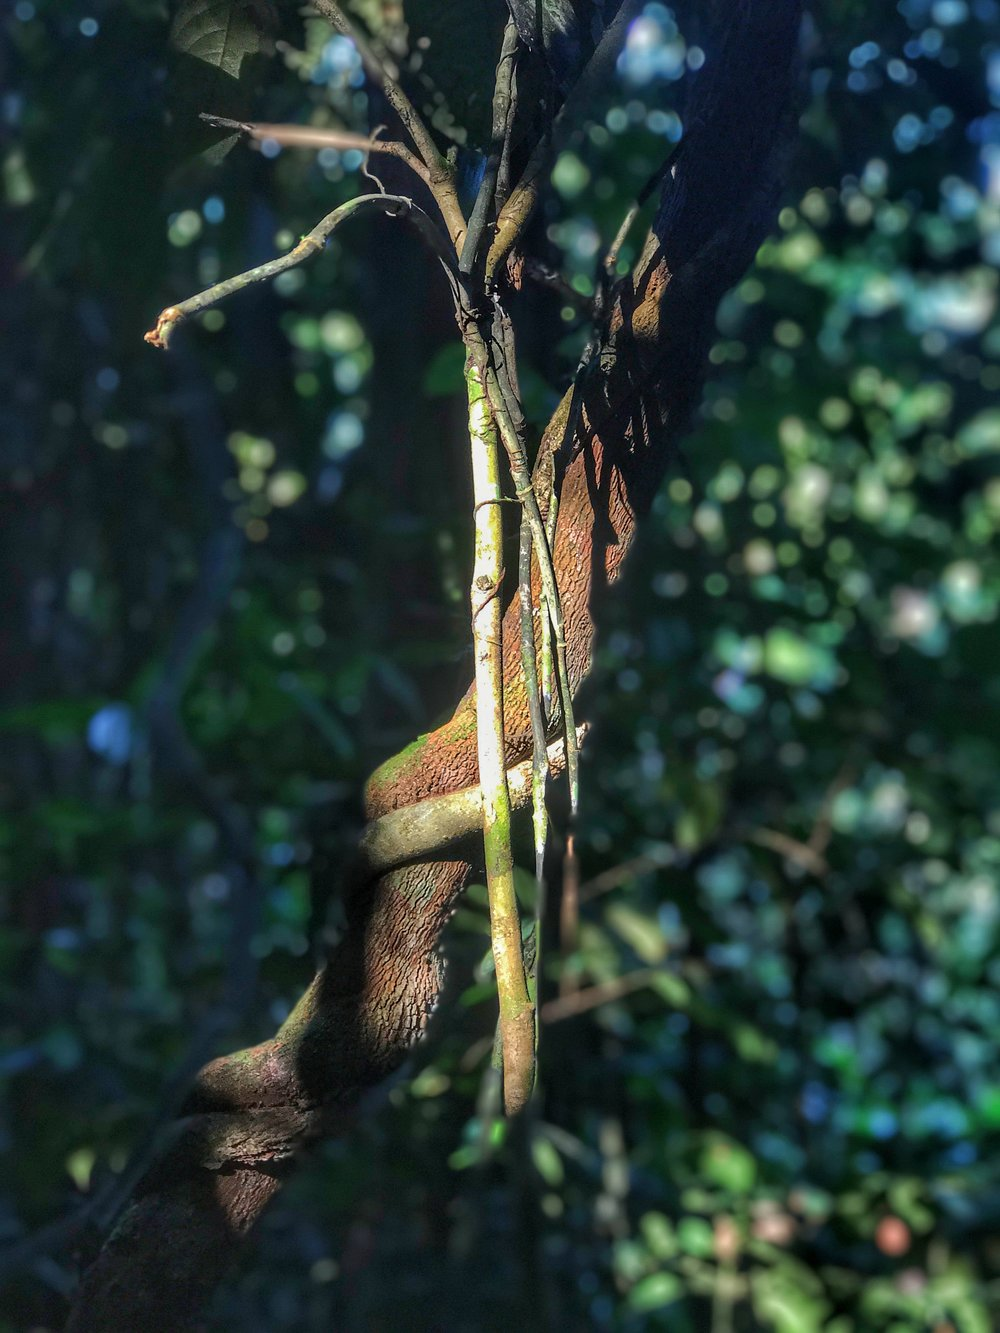 Not an Ayahuasca vine, but just the sun hitting a tree in a way that captured my attention.